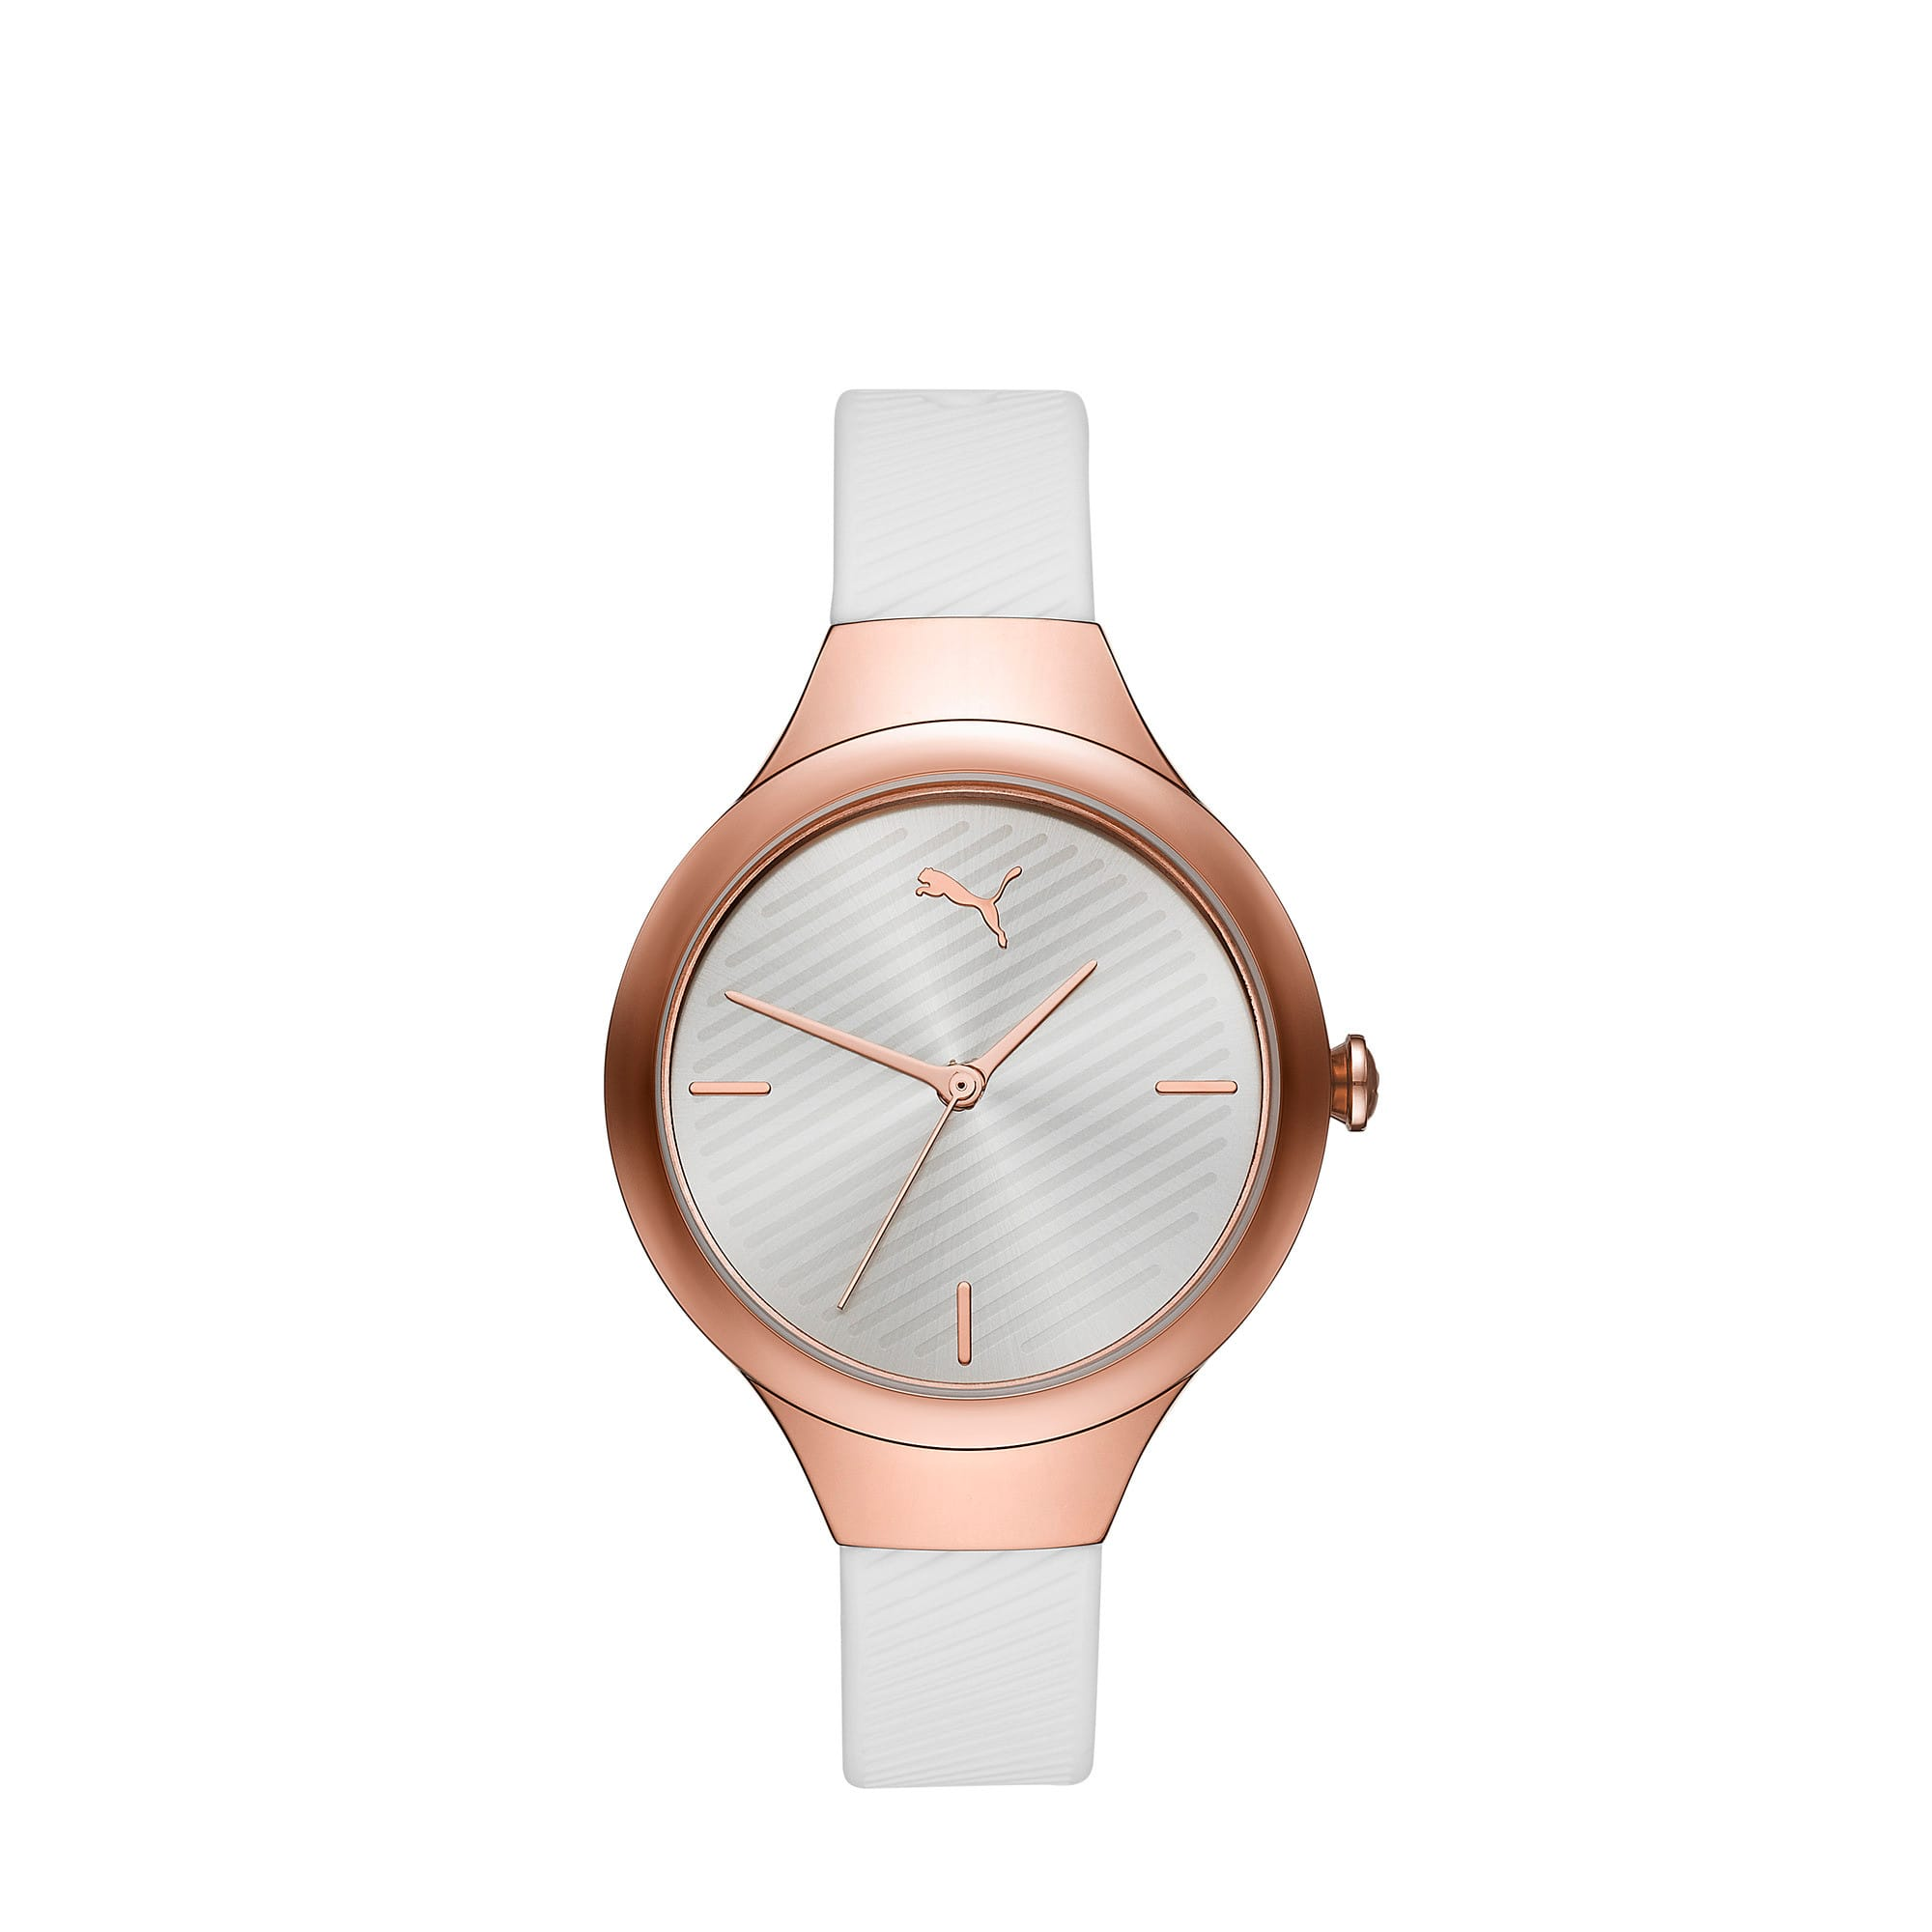 Thumbnail 1 of CONTOUR Ultra Slim Women's Watch, Rose gold/White, medium